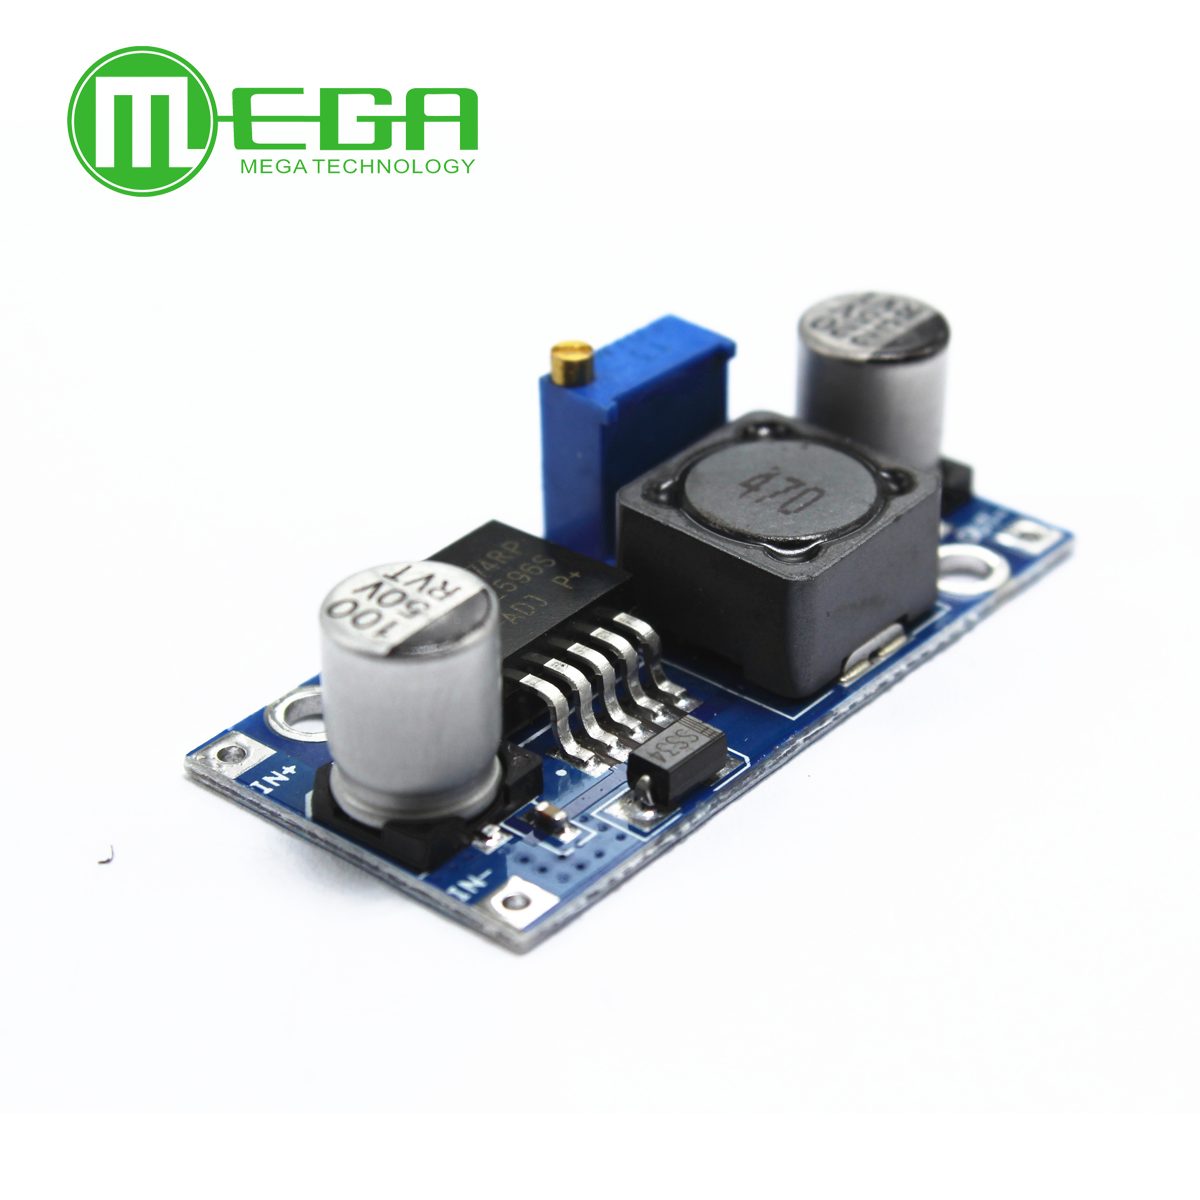 50pcs/lot LM2596S <font><b>LM2596</b></font> DC-DC Step-down module 5V/<font><b>12V</b></font>/24V adjustable Voltage regulator 3A(blue) image